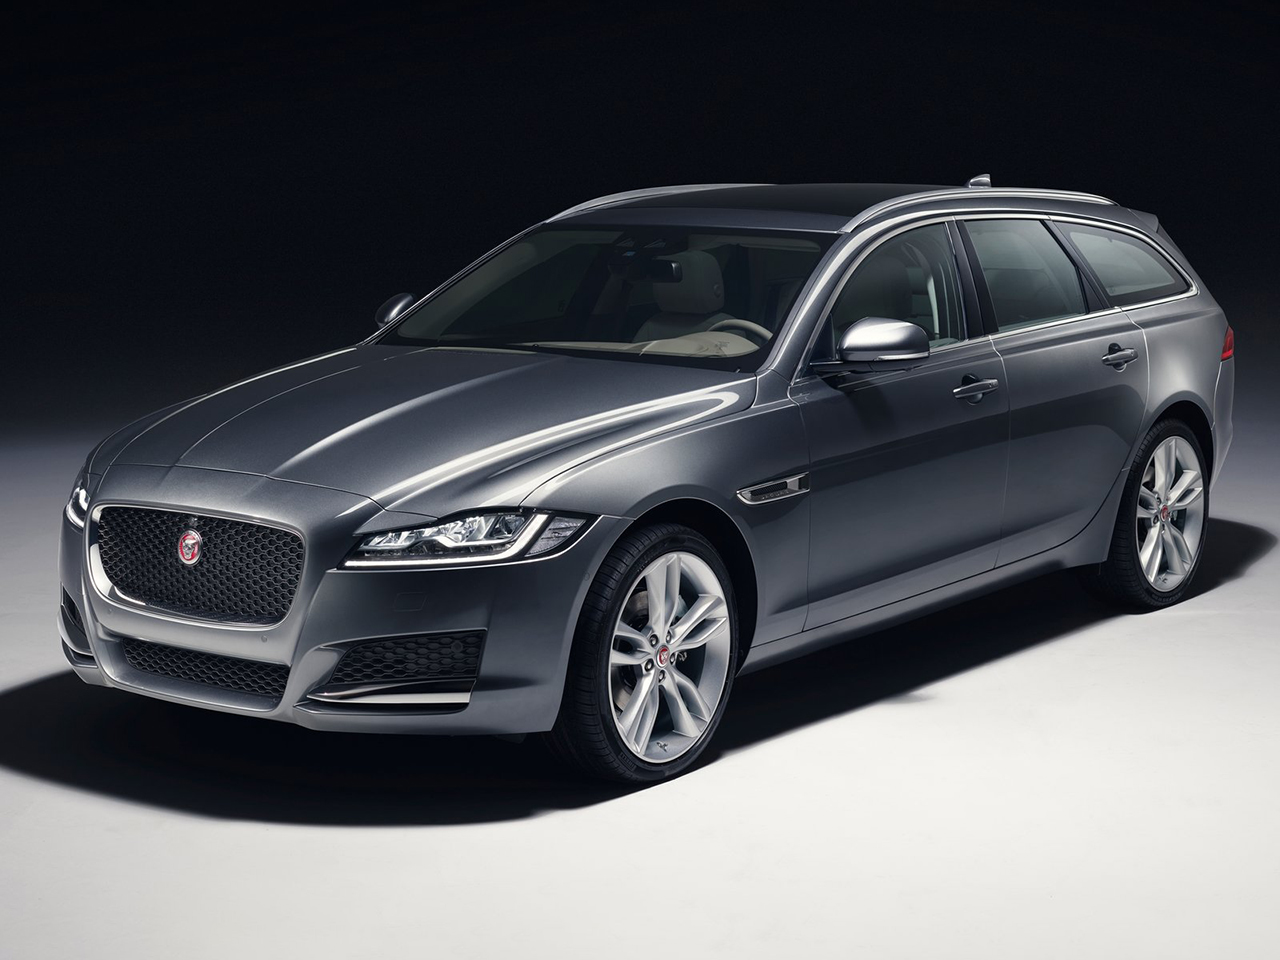 2020 Jaguar Xf Rs Specs and Review